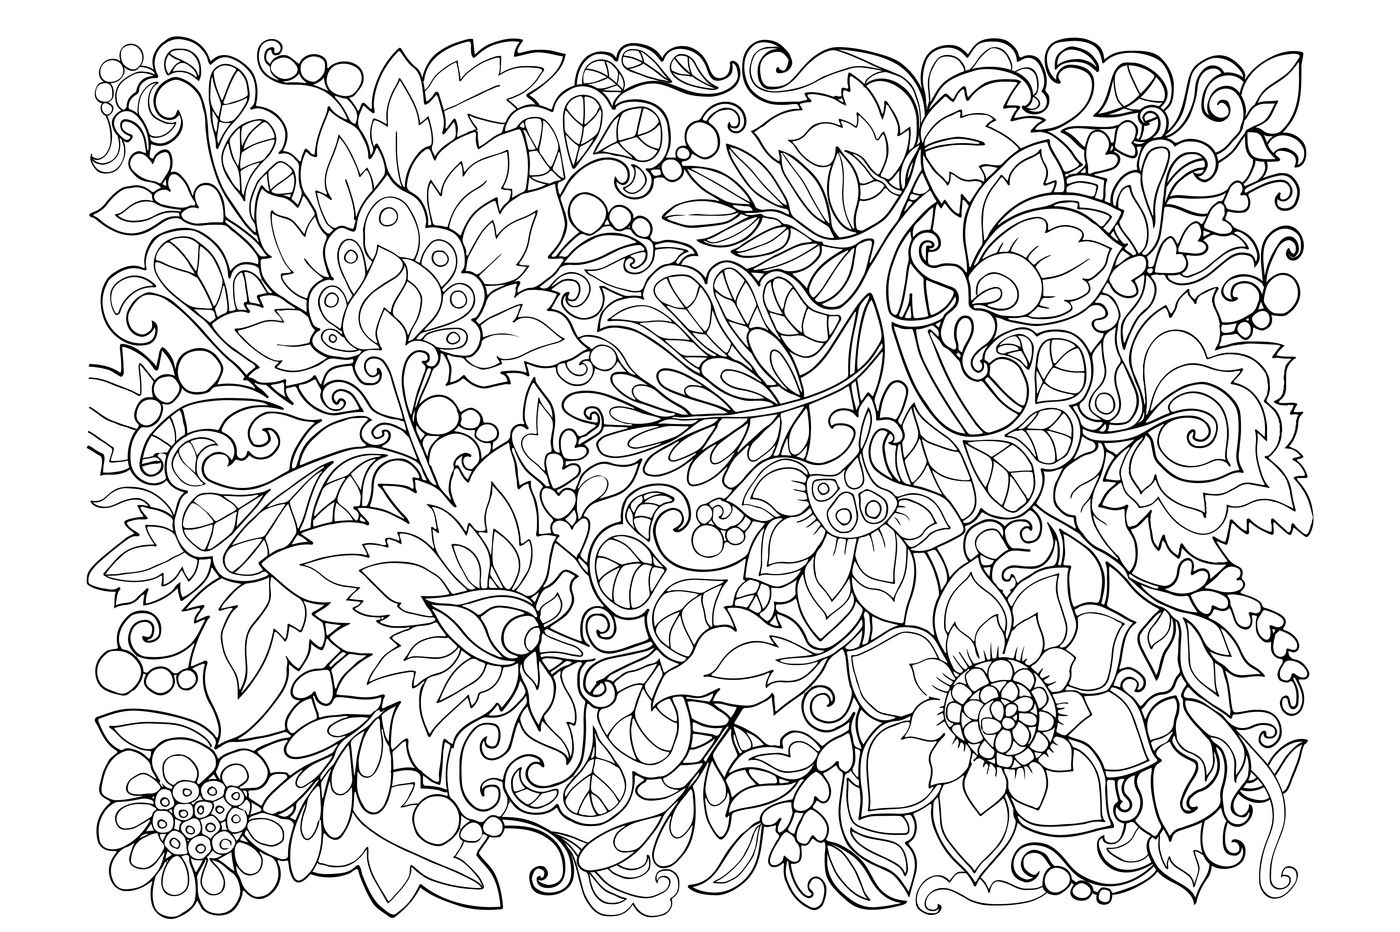 Decorative Flowers Coloring Pages By Elen Lane Thehungryjpeg Com